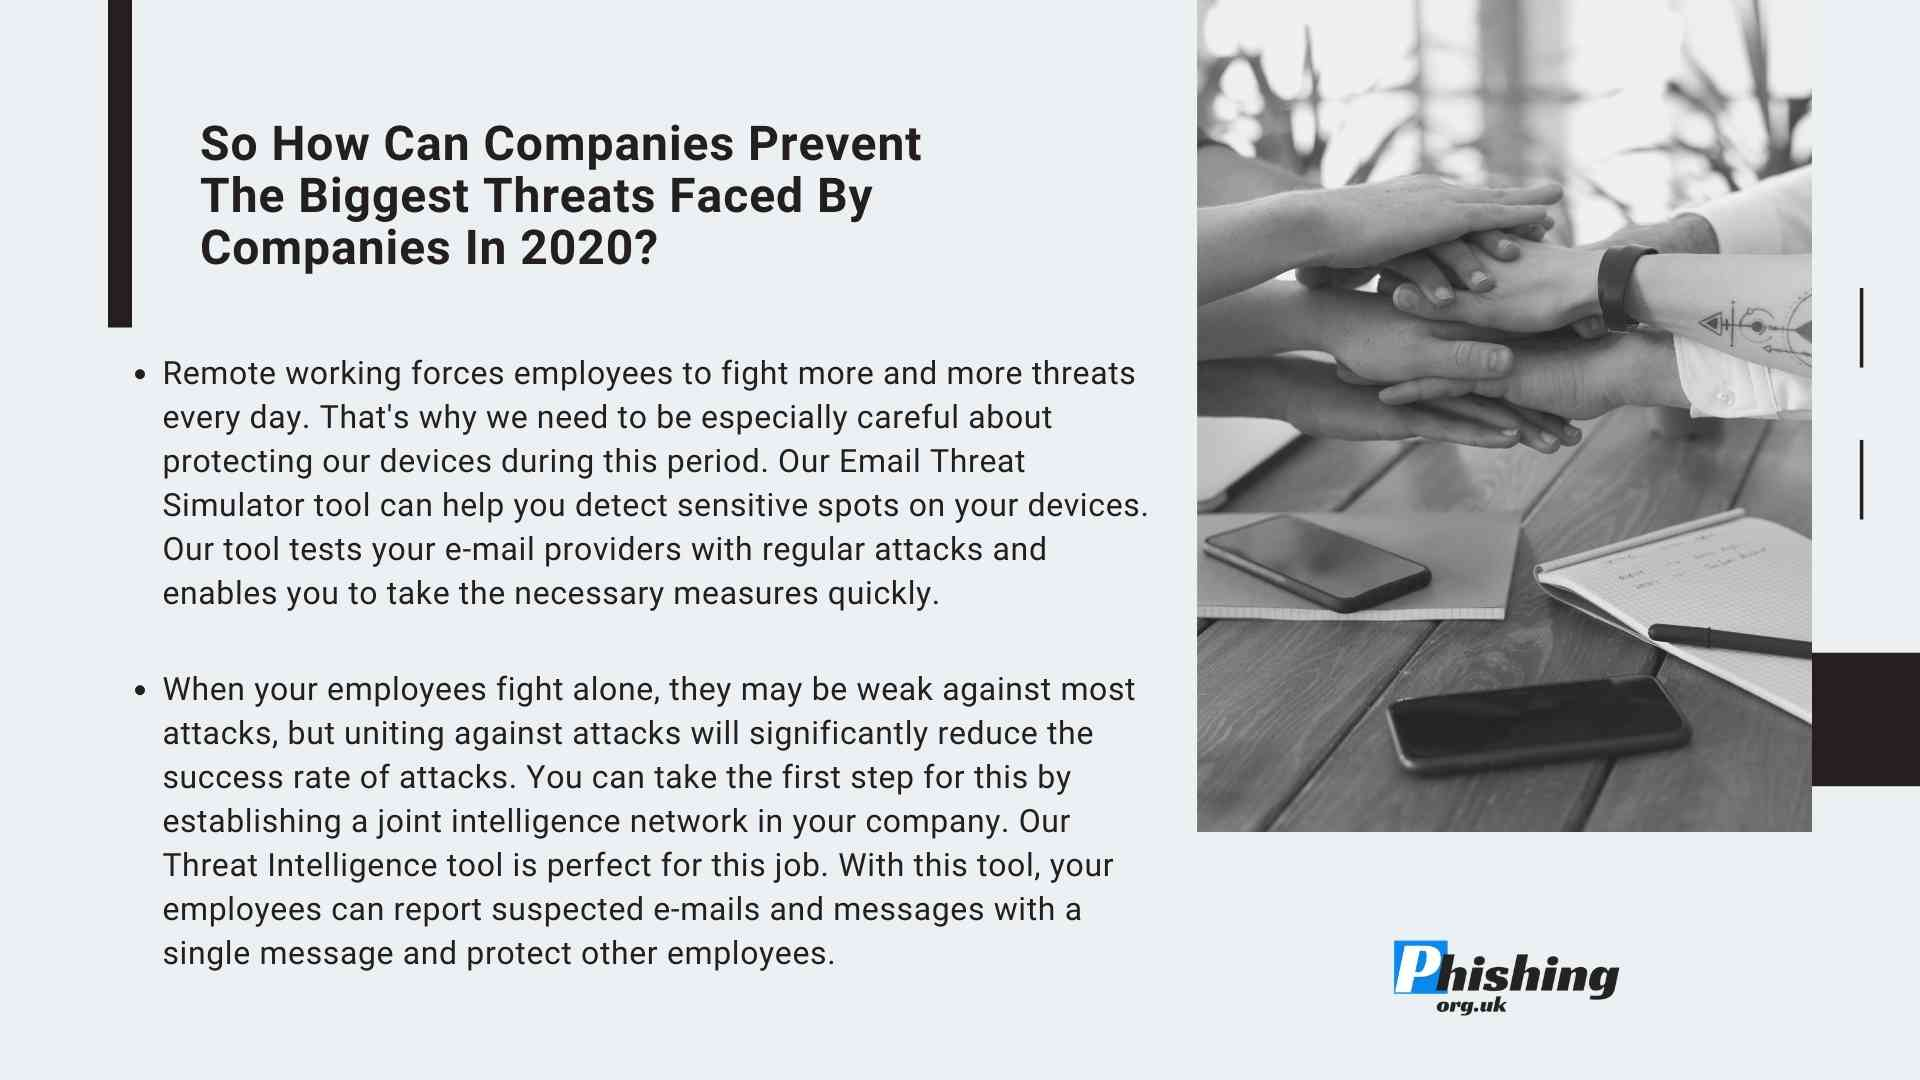 The Biggest Threats Faced by Companies in 2020